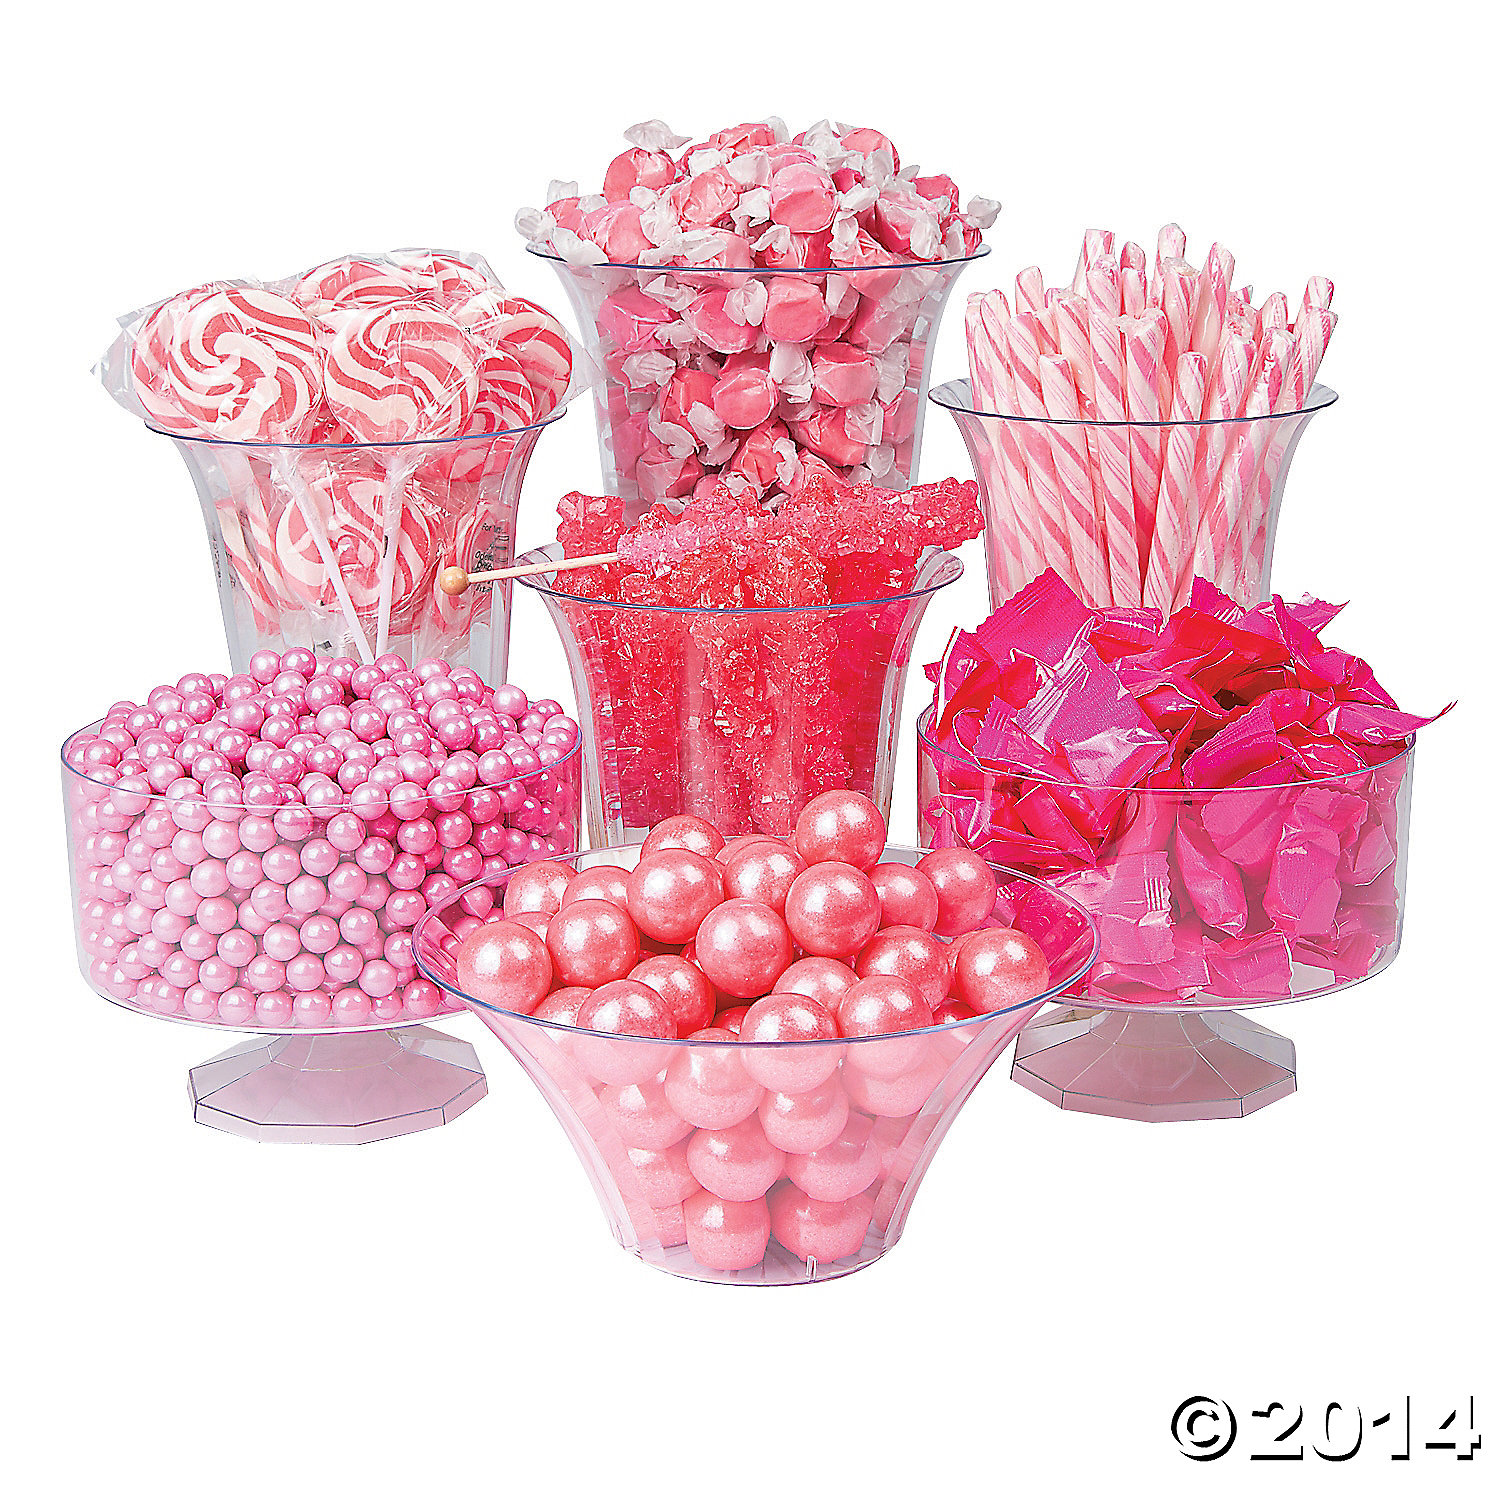 Pleasing Candy Buffets Party Supplies Canada Open A Party Interior Design Ideas Grebswwsoteloinfo